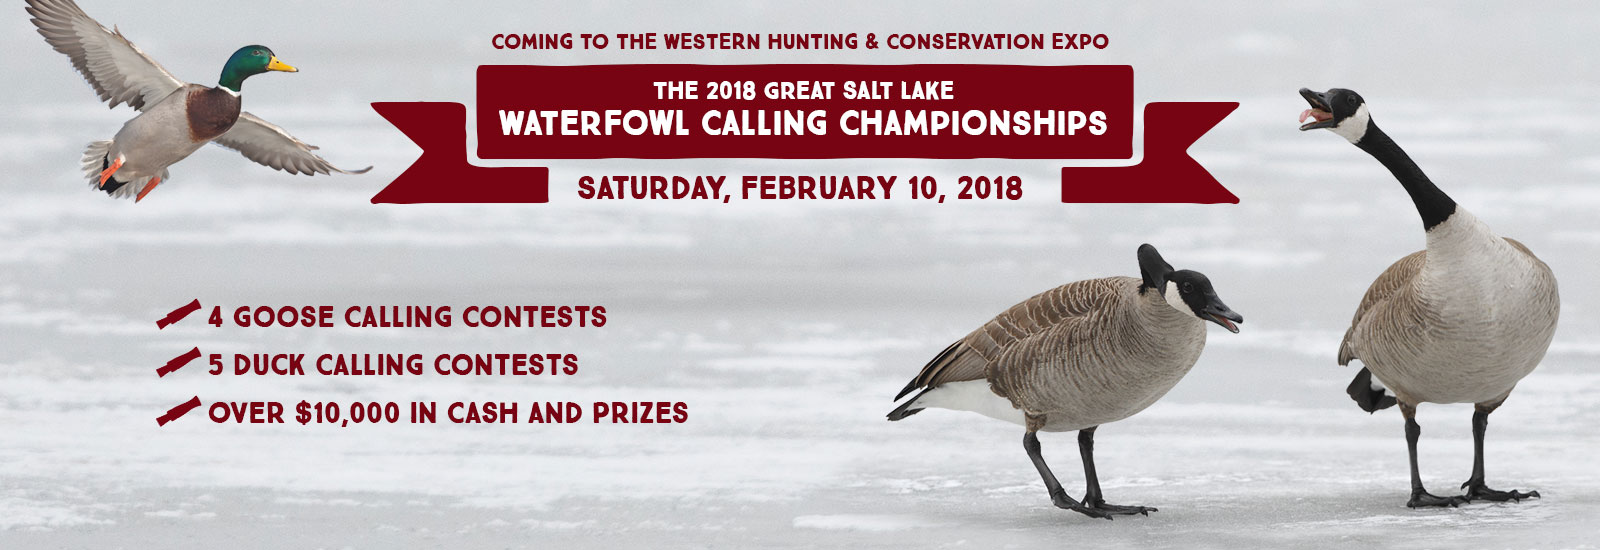 The 2018 Great Salt Lake Waterfowl Calling Championships